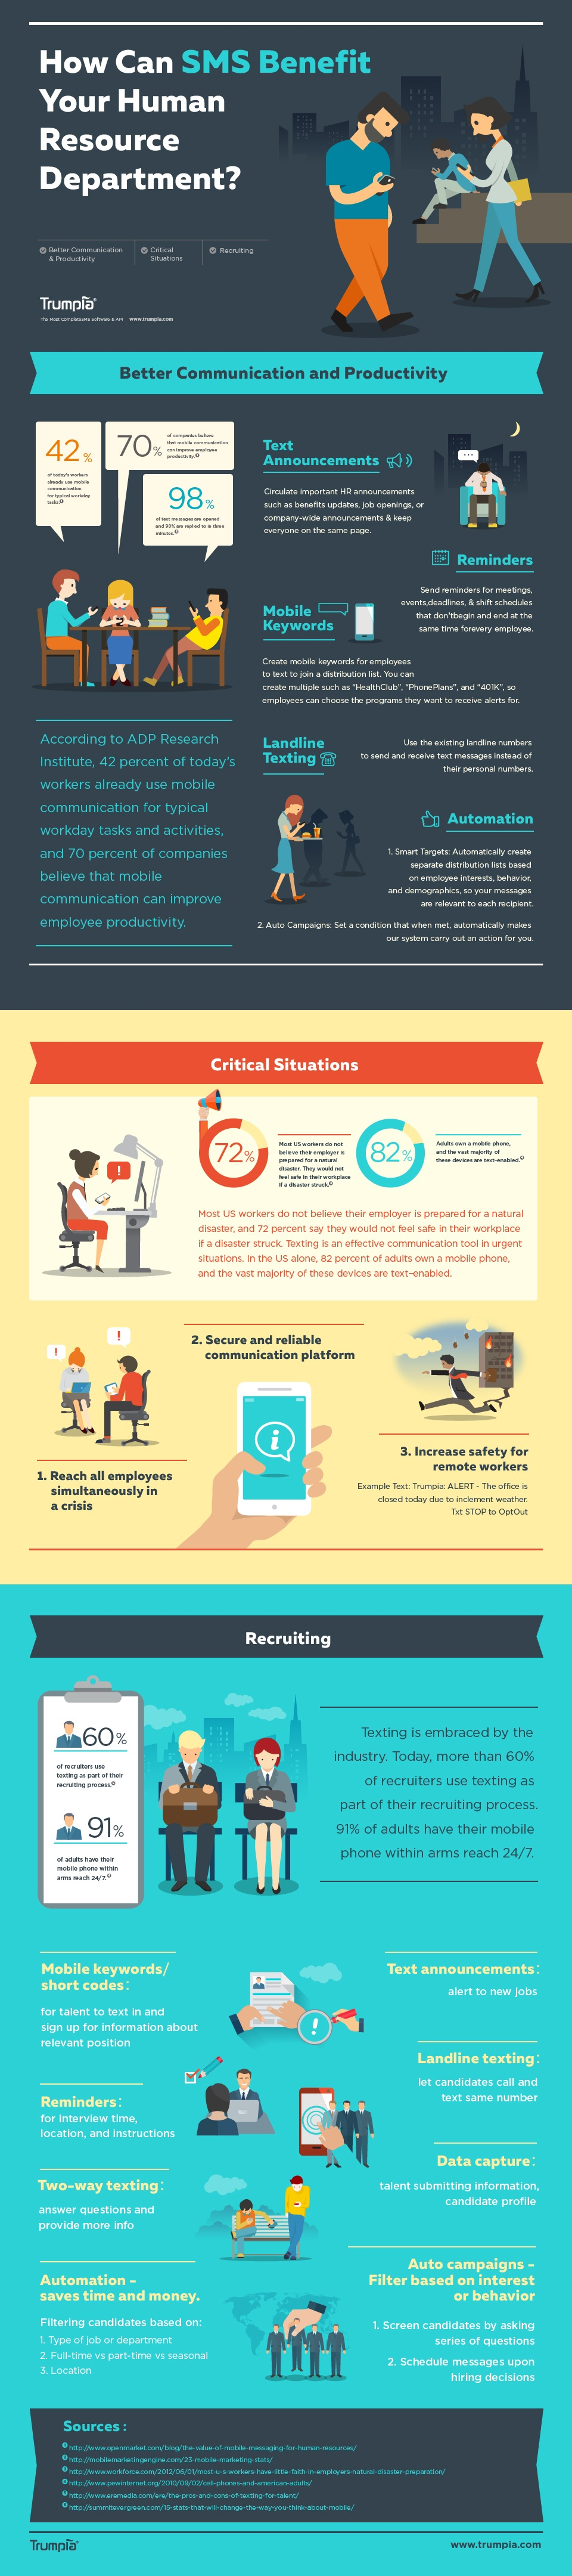 Infographic For Human Resource